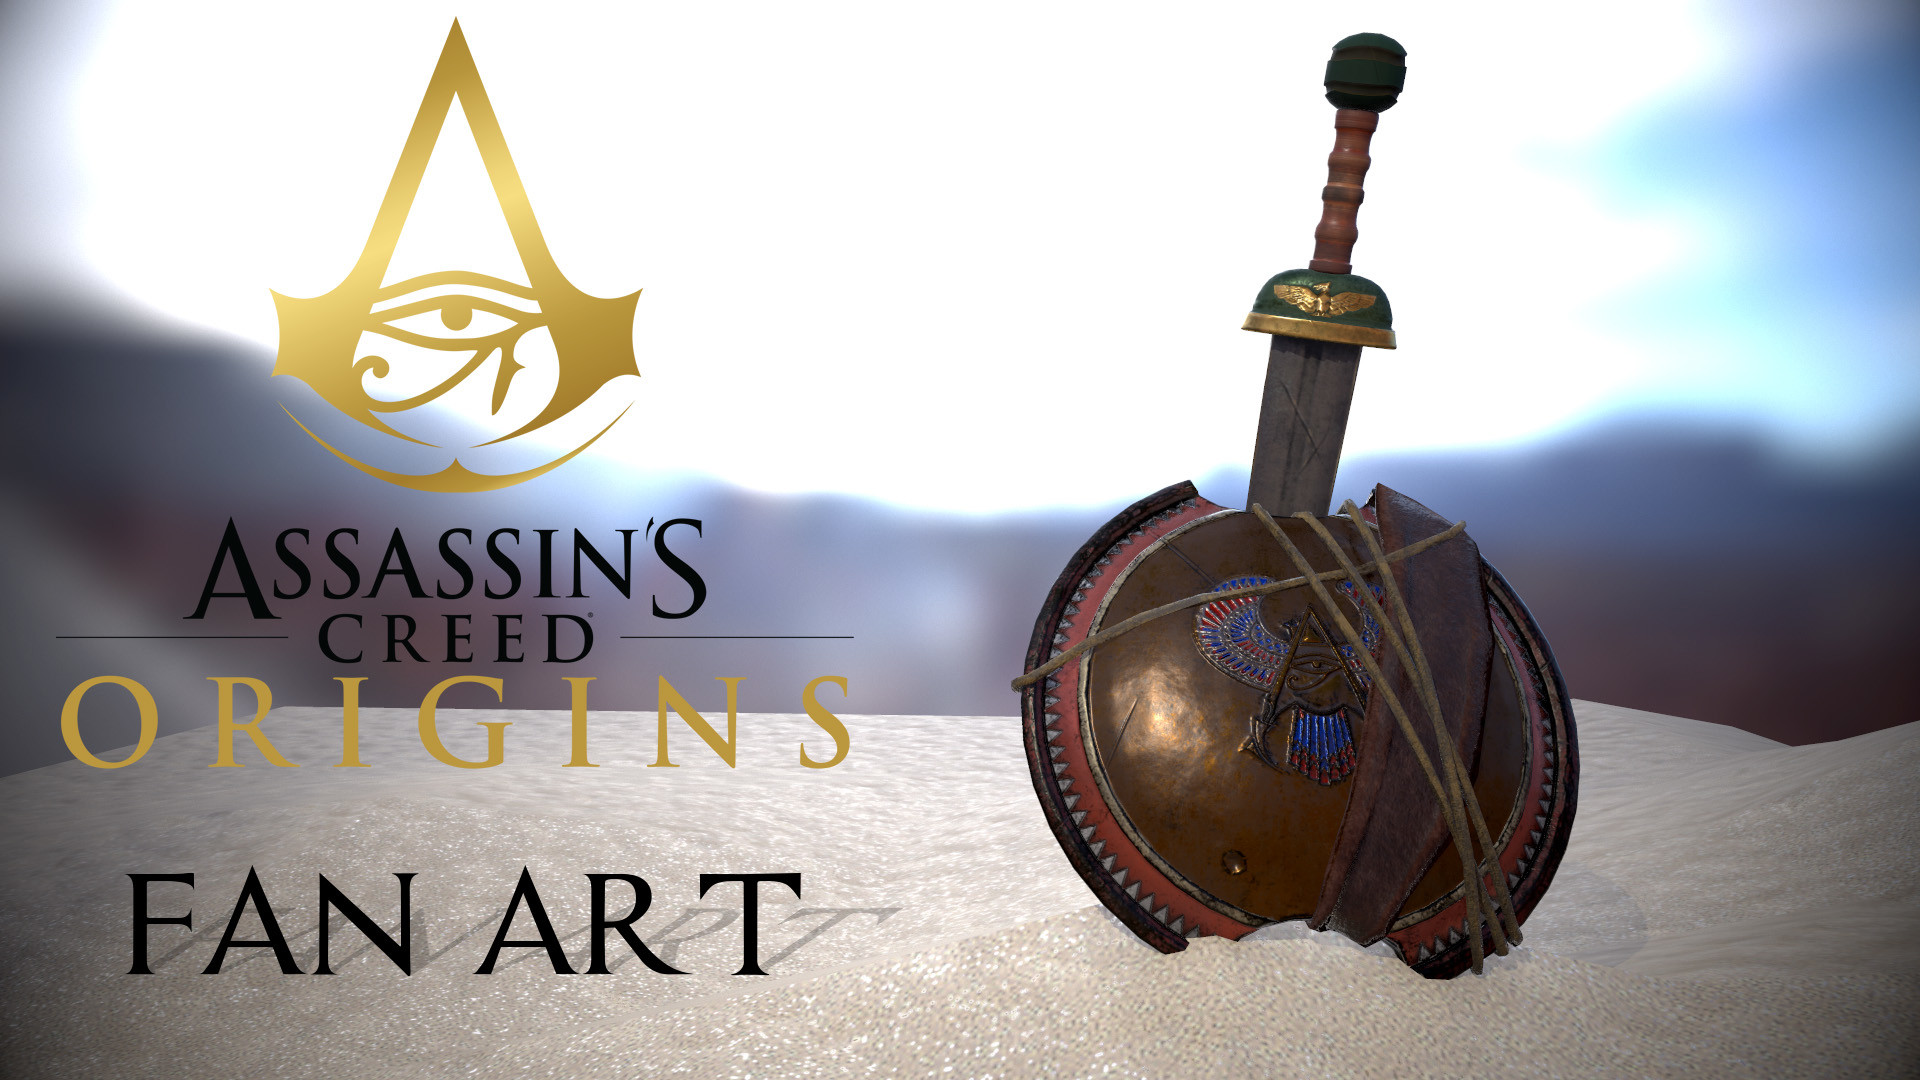 Shield and Sword (Assassin's Creed Fan Art)